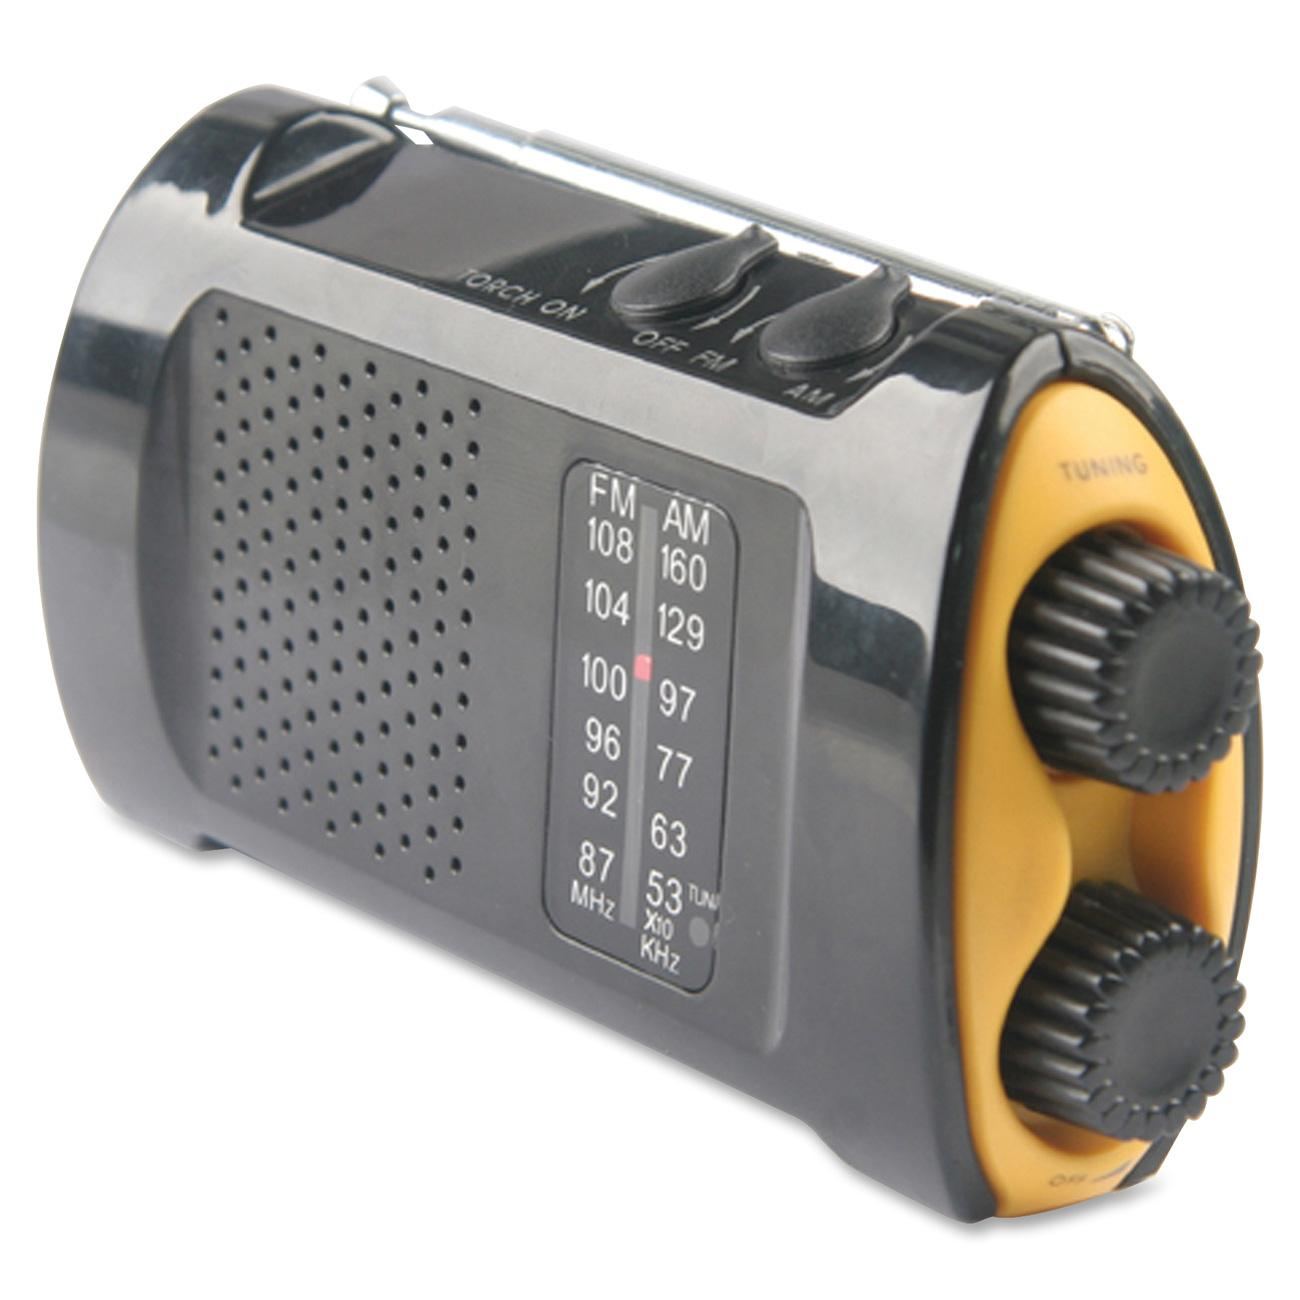 Acme United Portable AM/FMTV Crank Radio, Yellow, Black